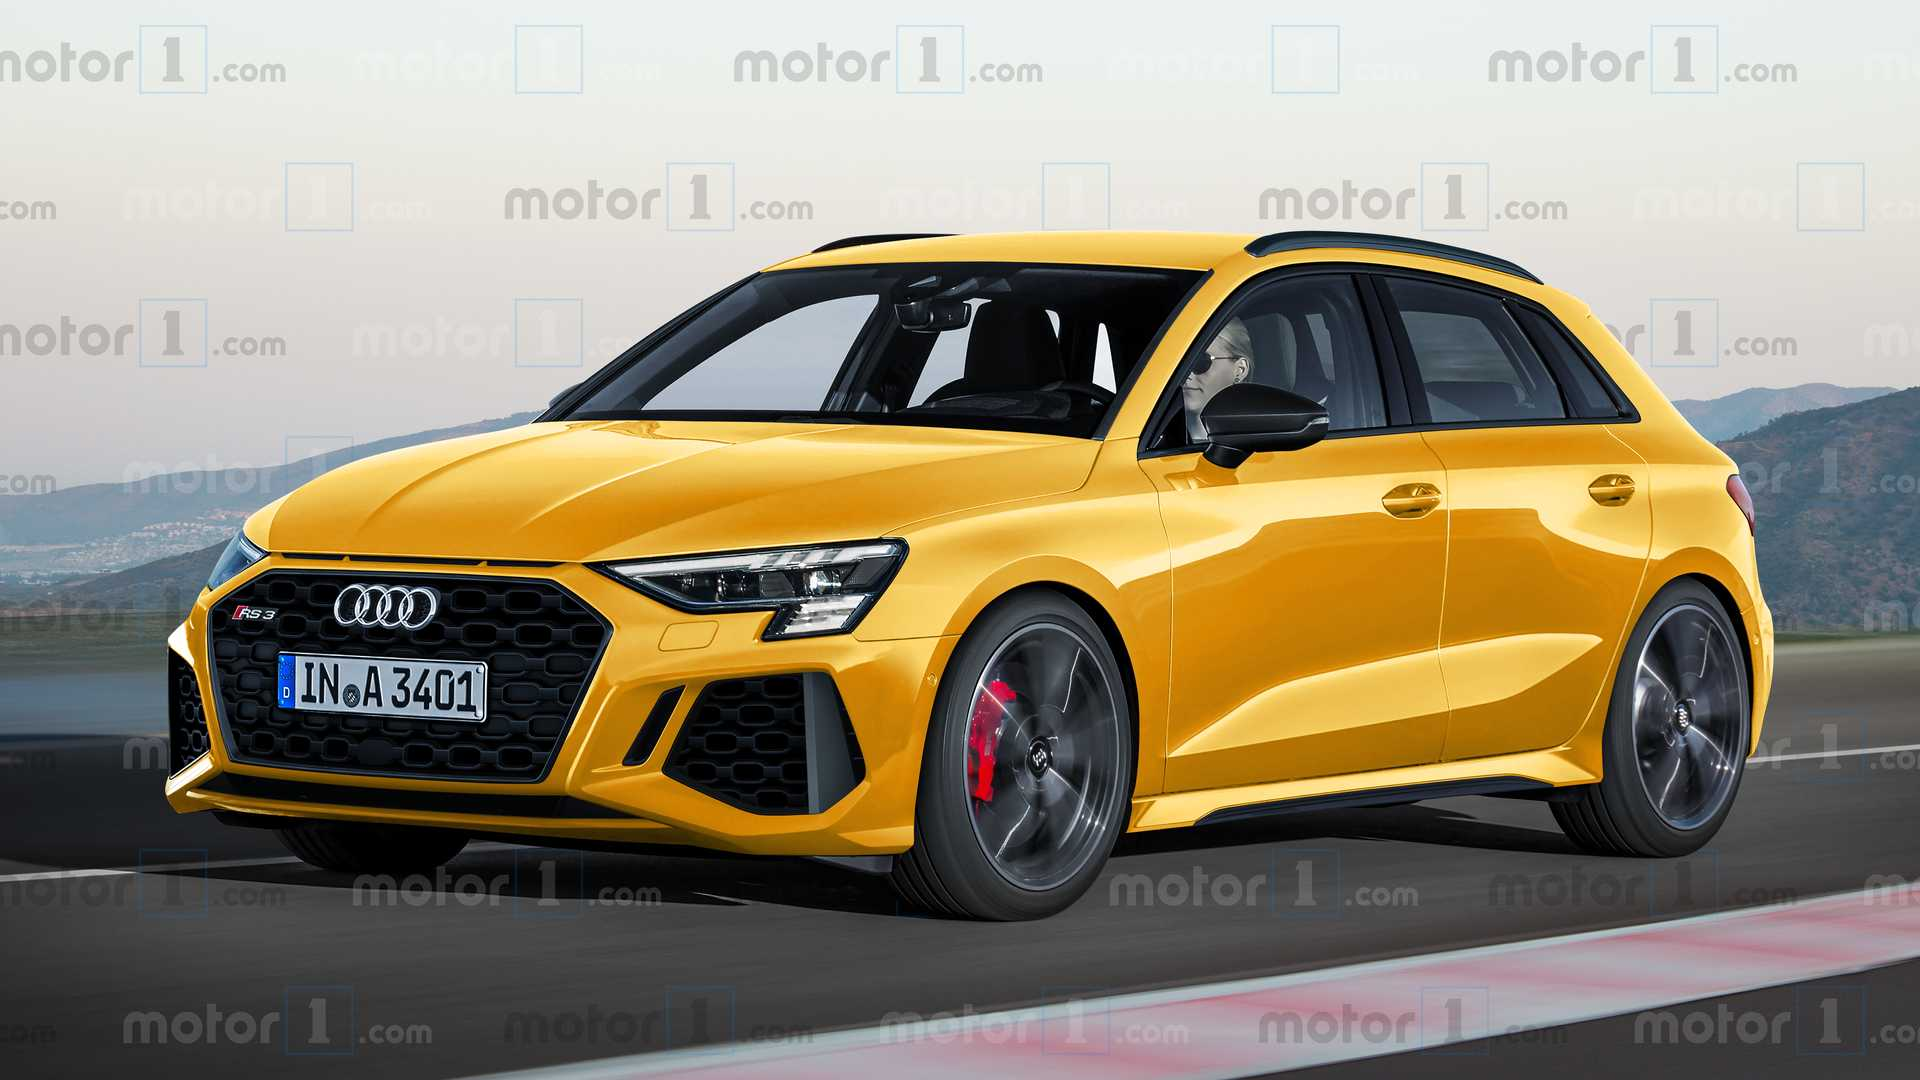 2021 Audi Rs3 Sportback This Is What It Could Look Like